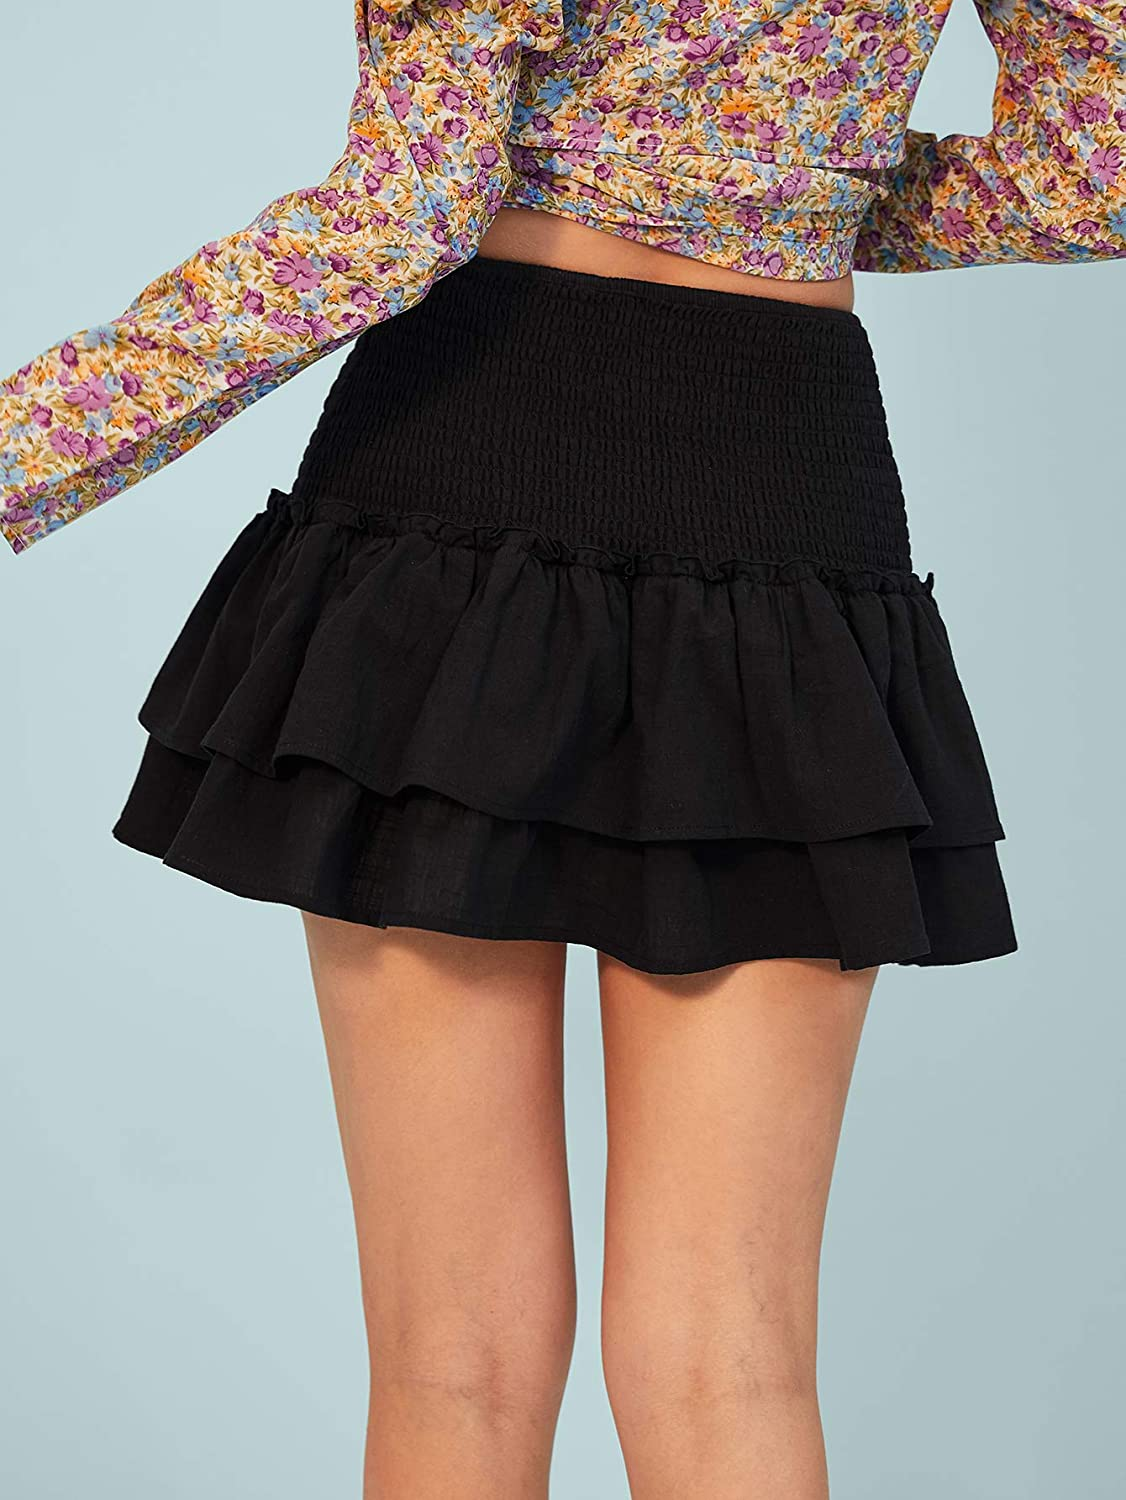 Red White Blue Black Gift Girlfriend Skirt Shi Tou-Clothes Breathable Summer Skirt for Beach